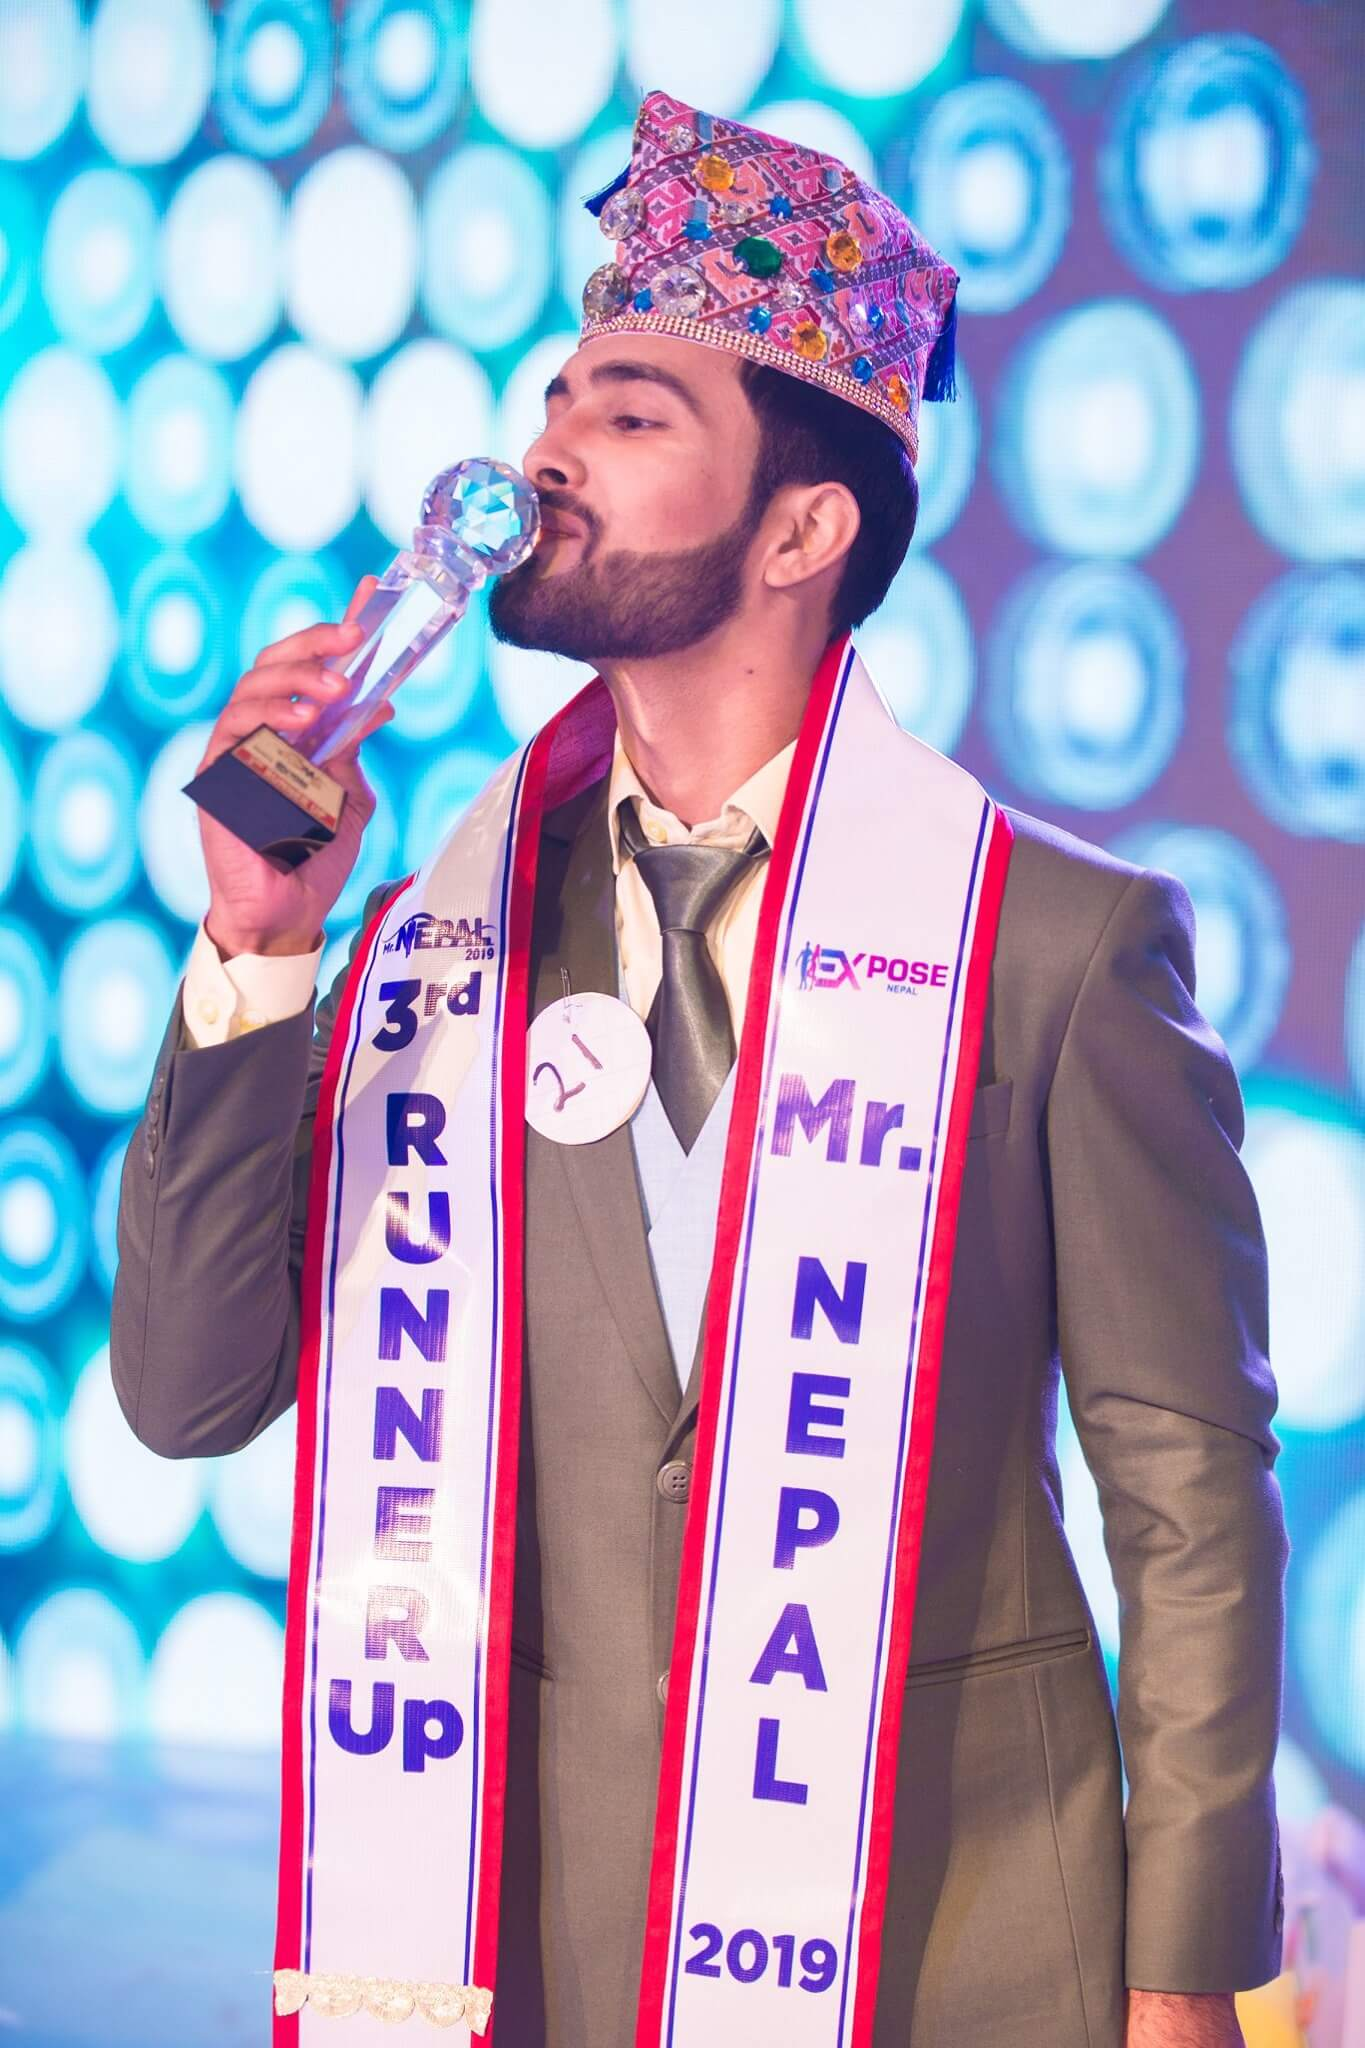 3rd Runner Up Prince Abhi